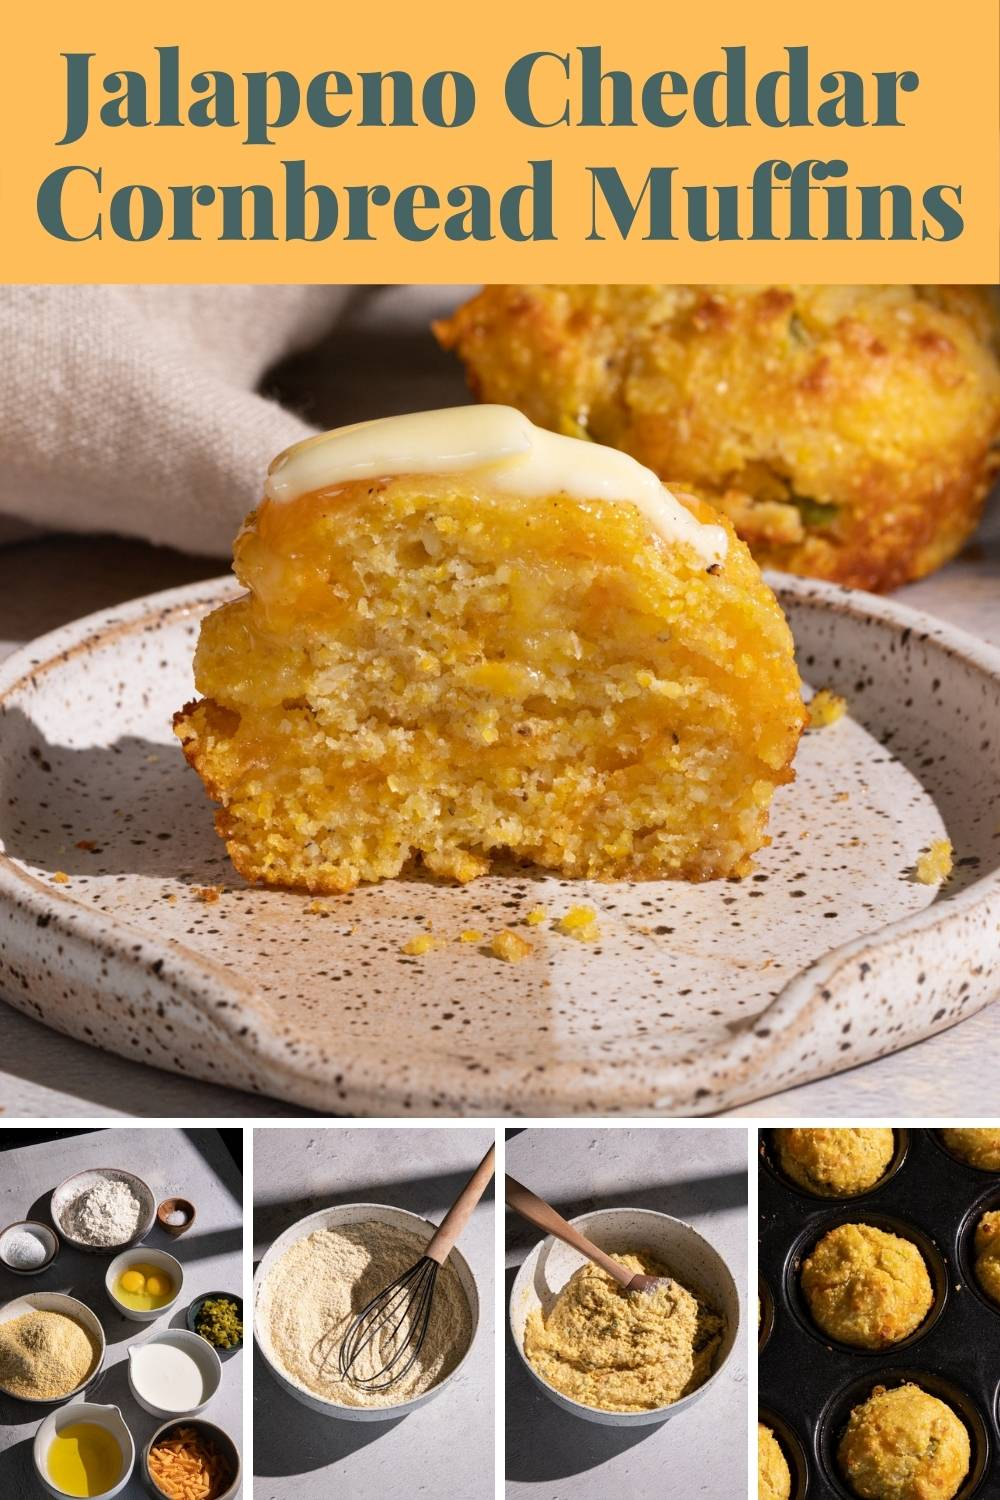 Jalapeno Cheddar Cornbread Muffins are crunchy on the outside and soft on the inside! via @bessiebakes